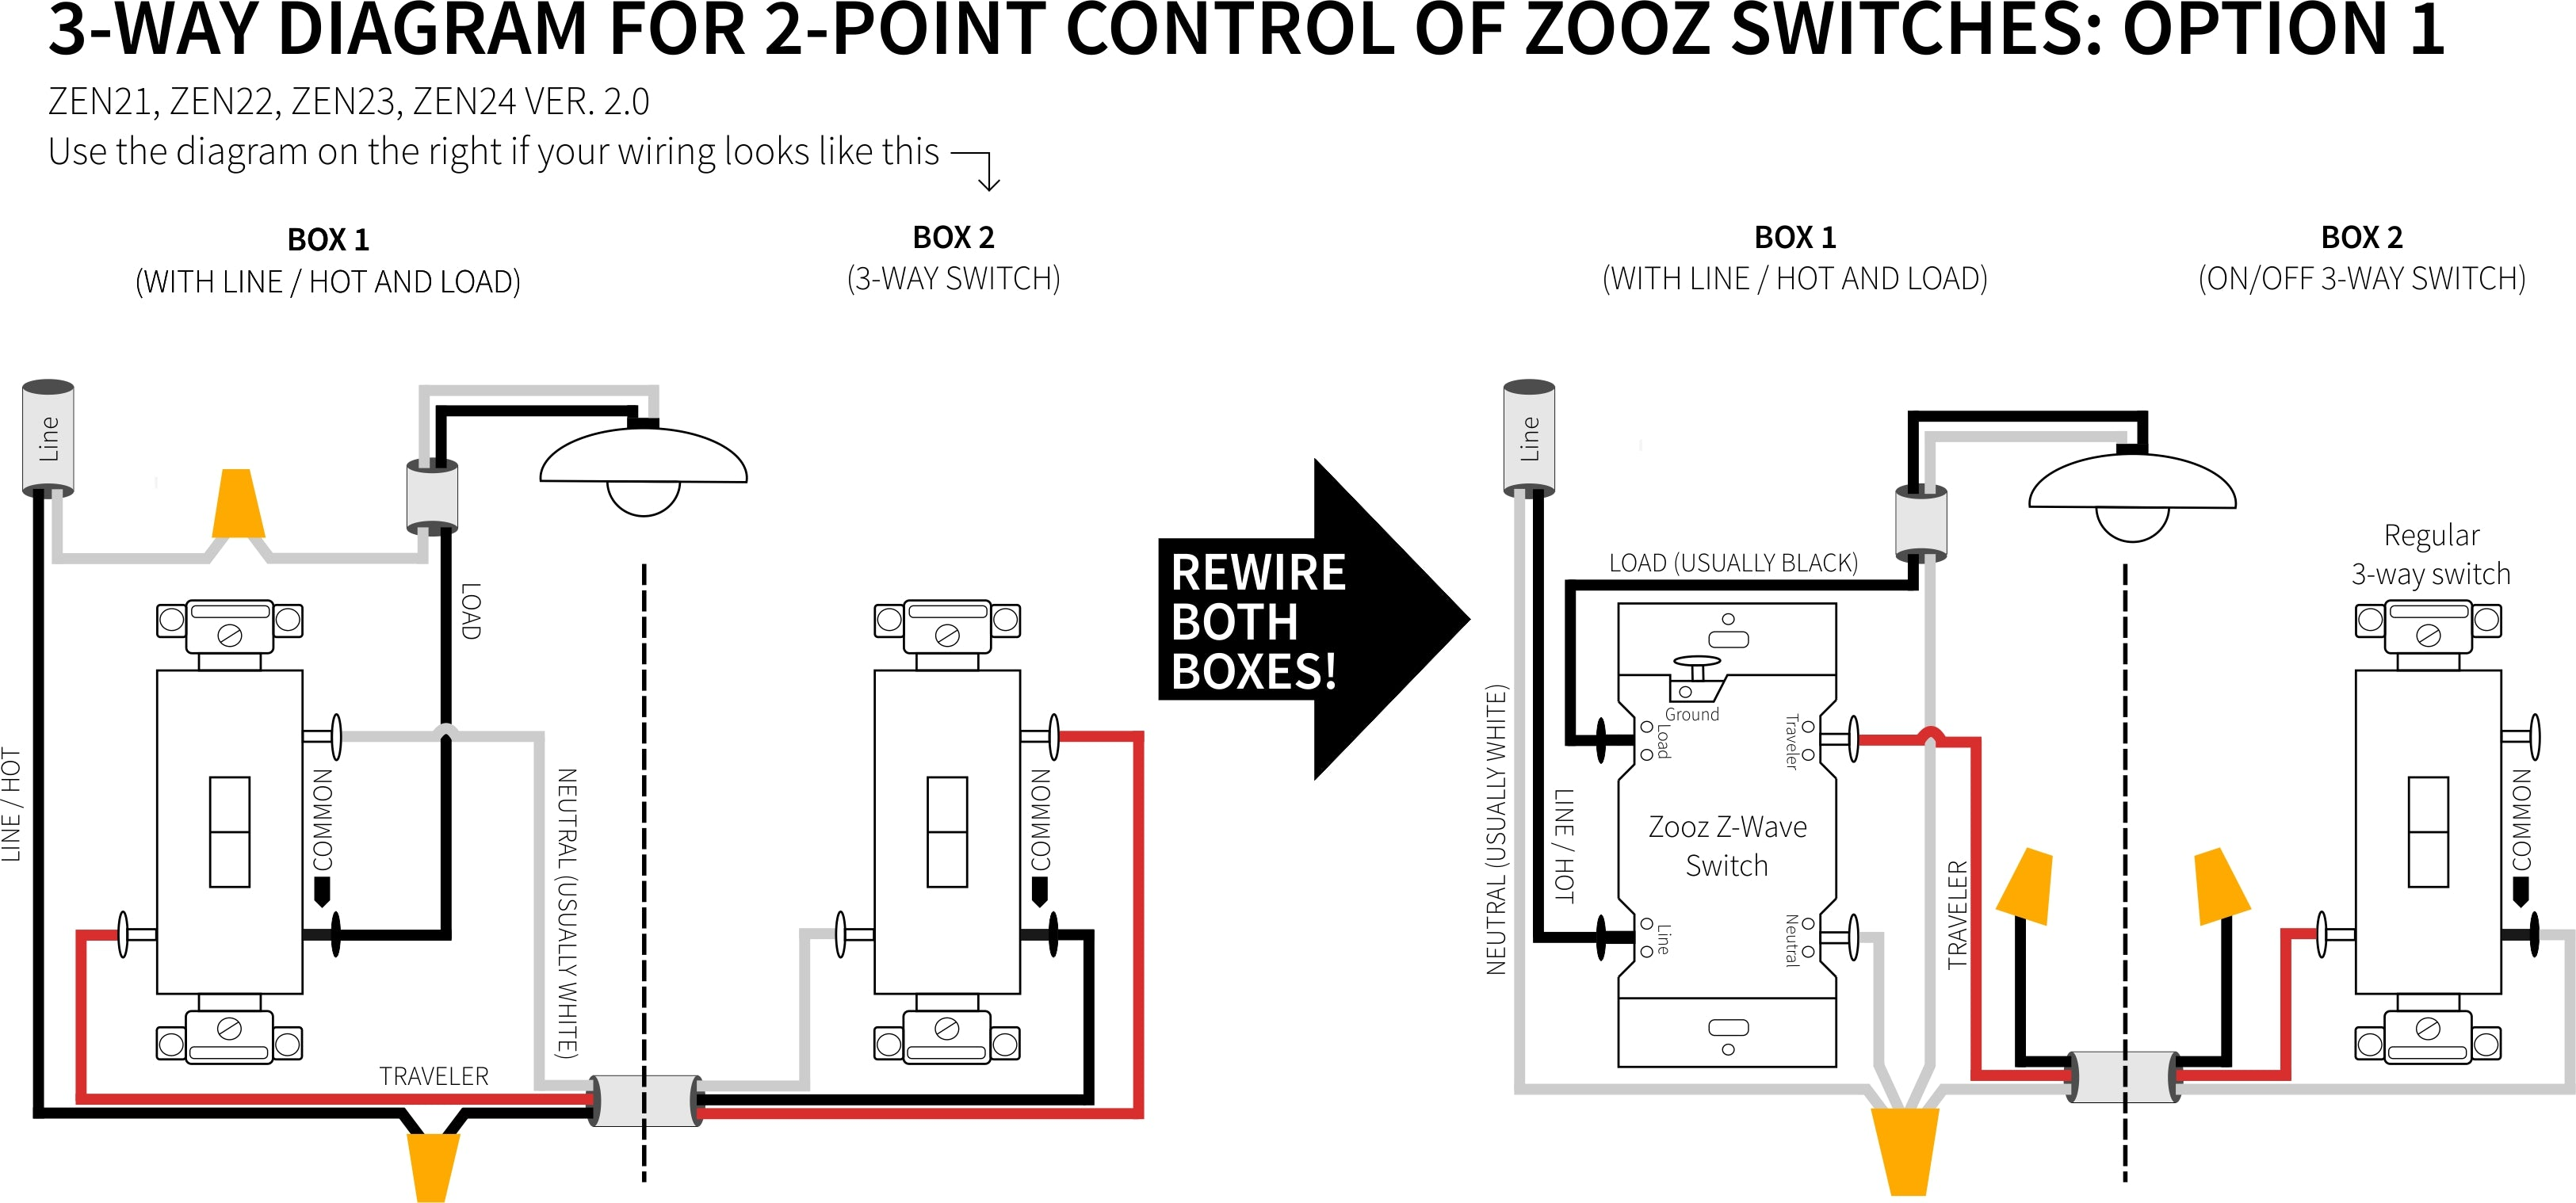 zooz z-wave plus dimmer toggle switch zen24 ver  4 0